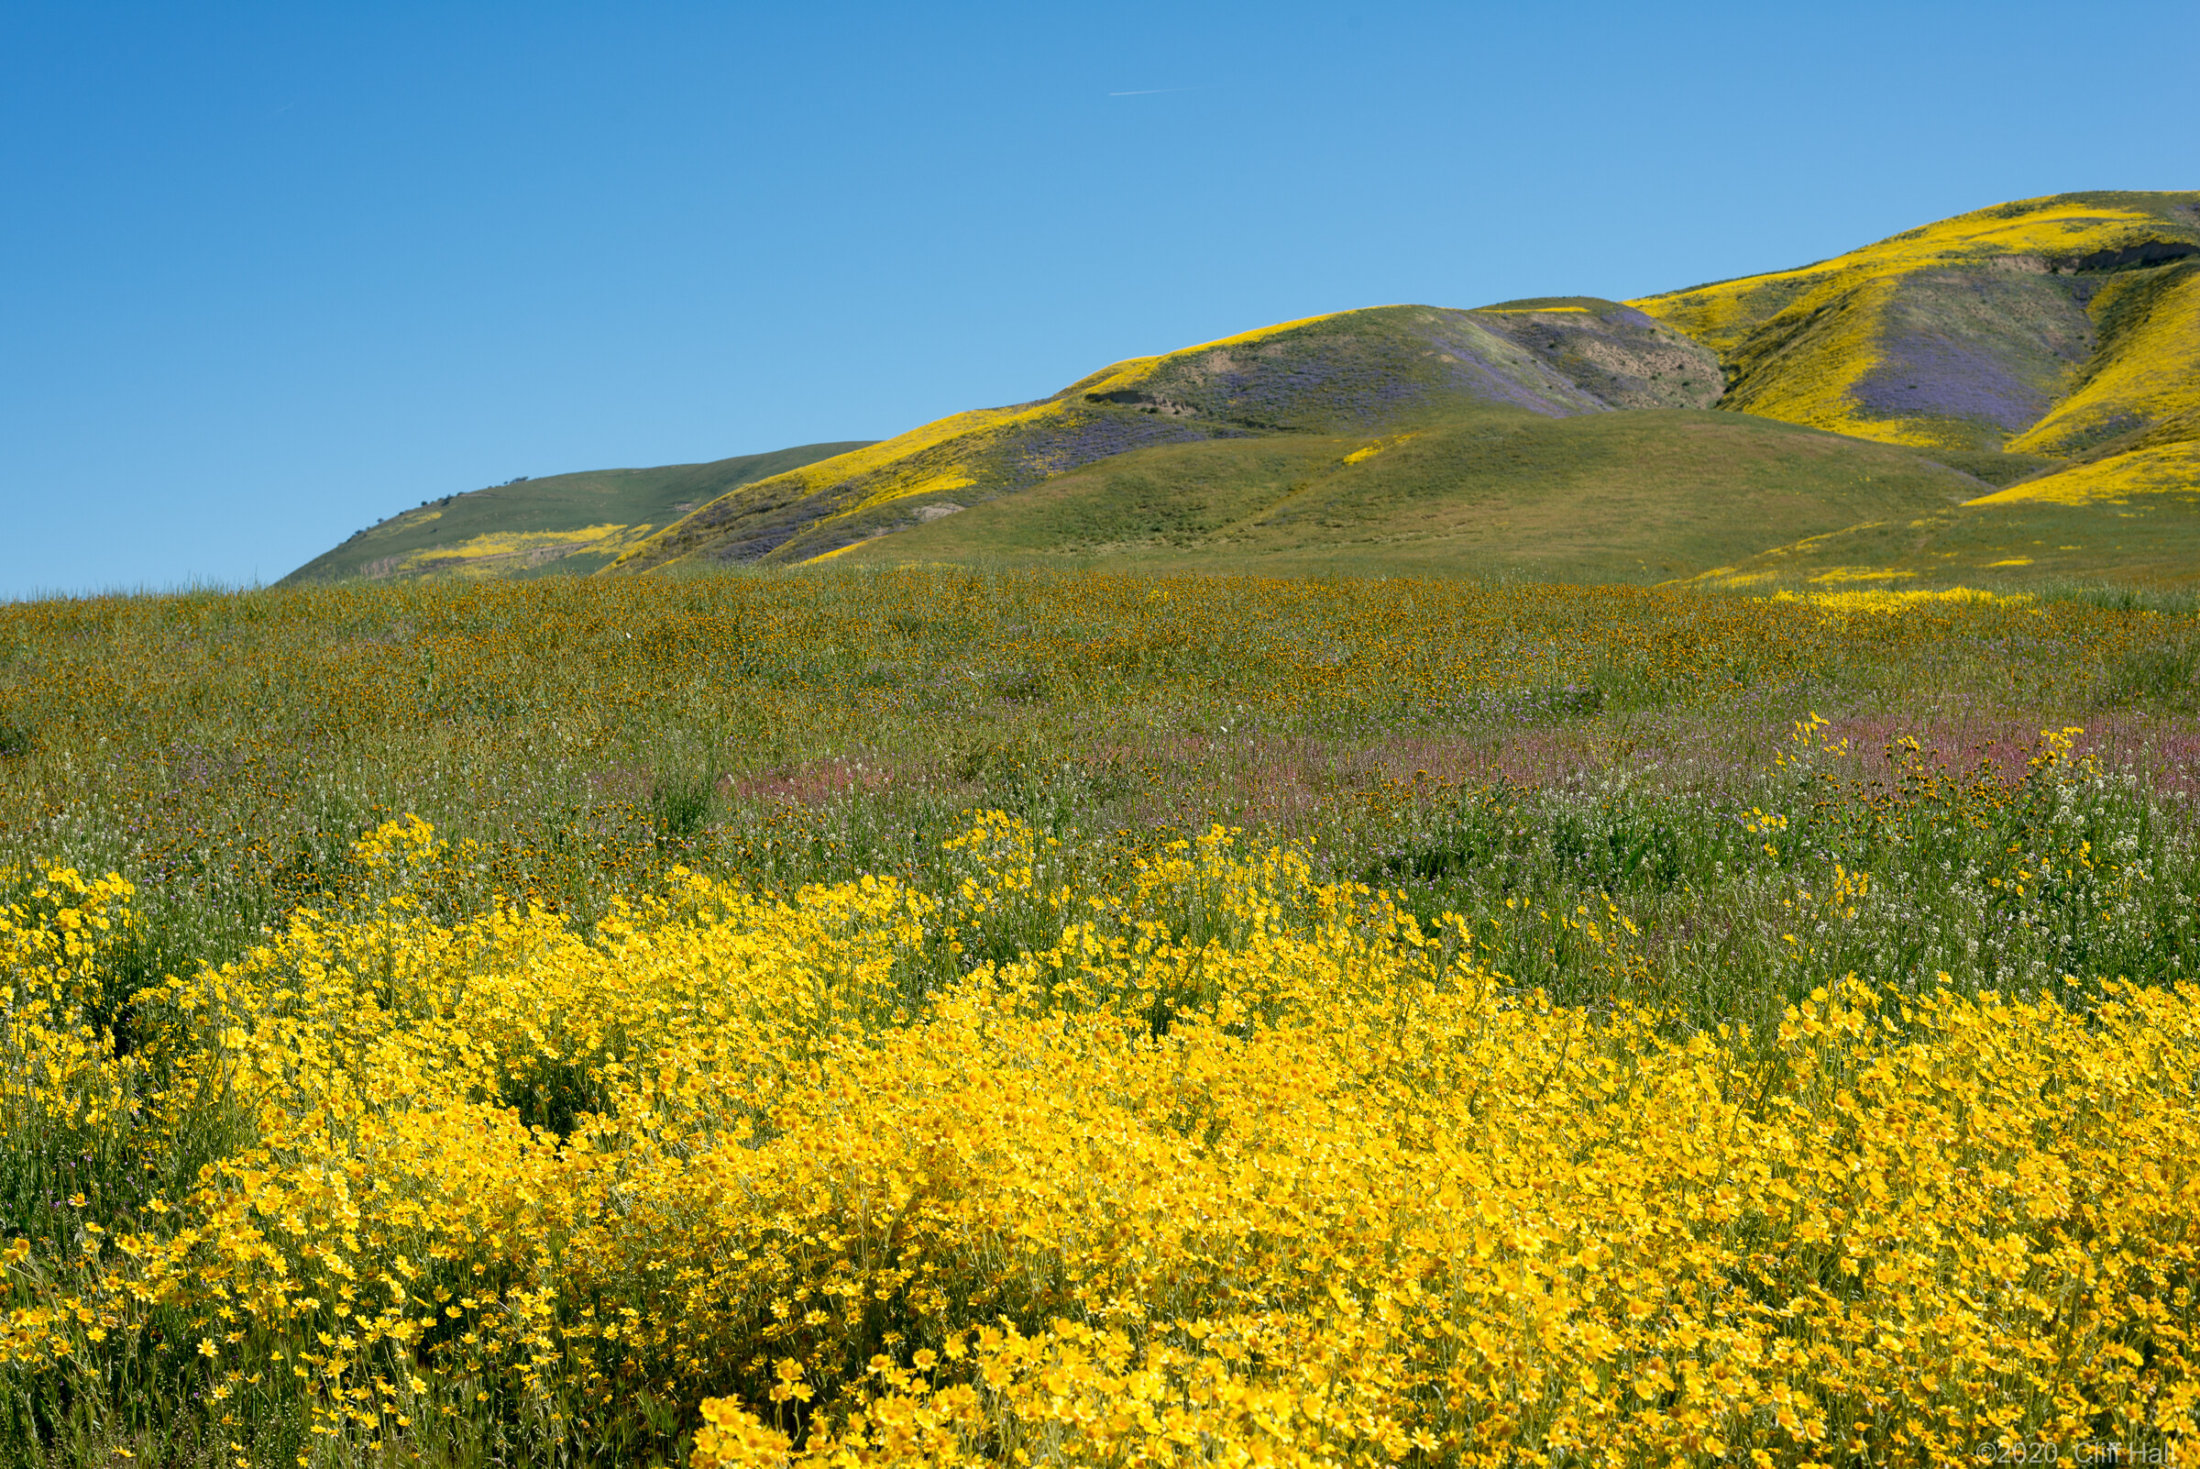 The Hills are alive with Color